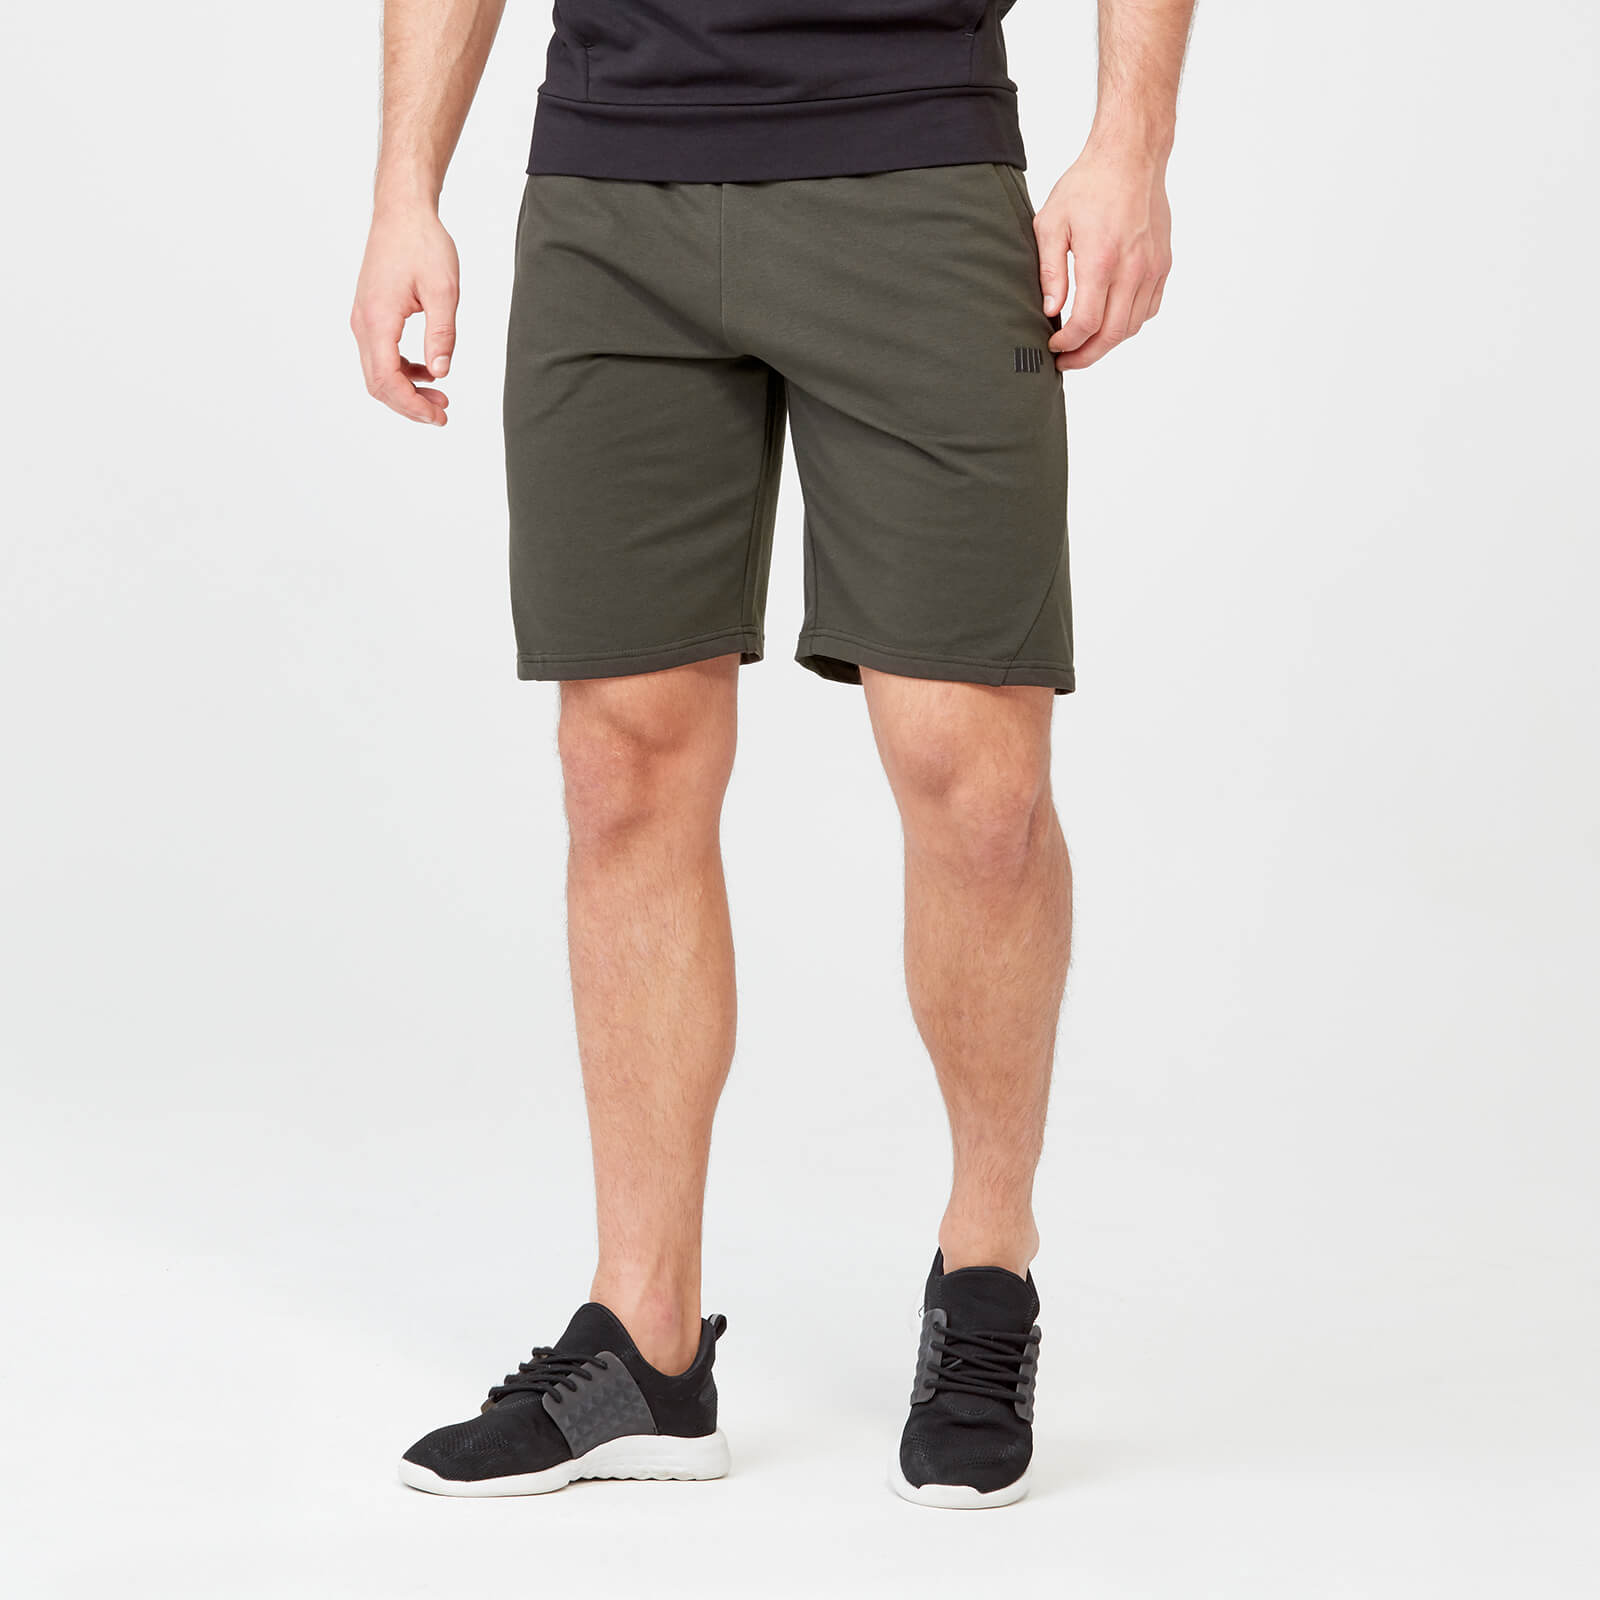 Form Shorts - Khaki - XS